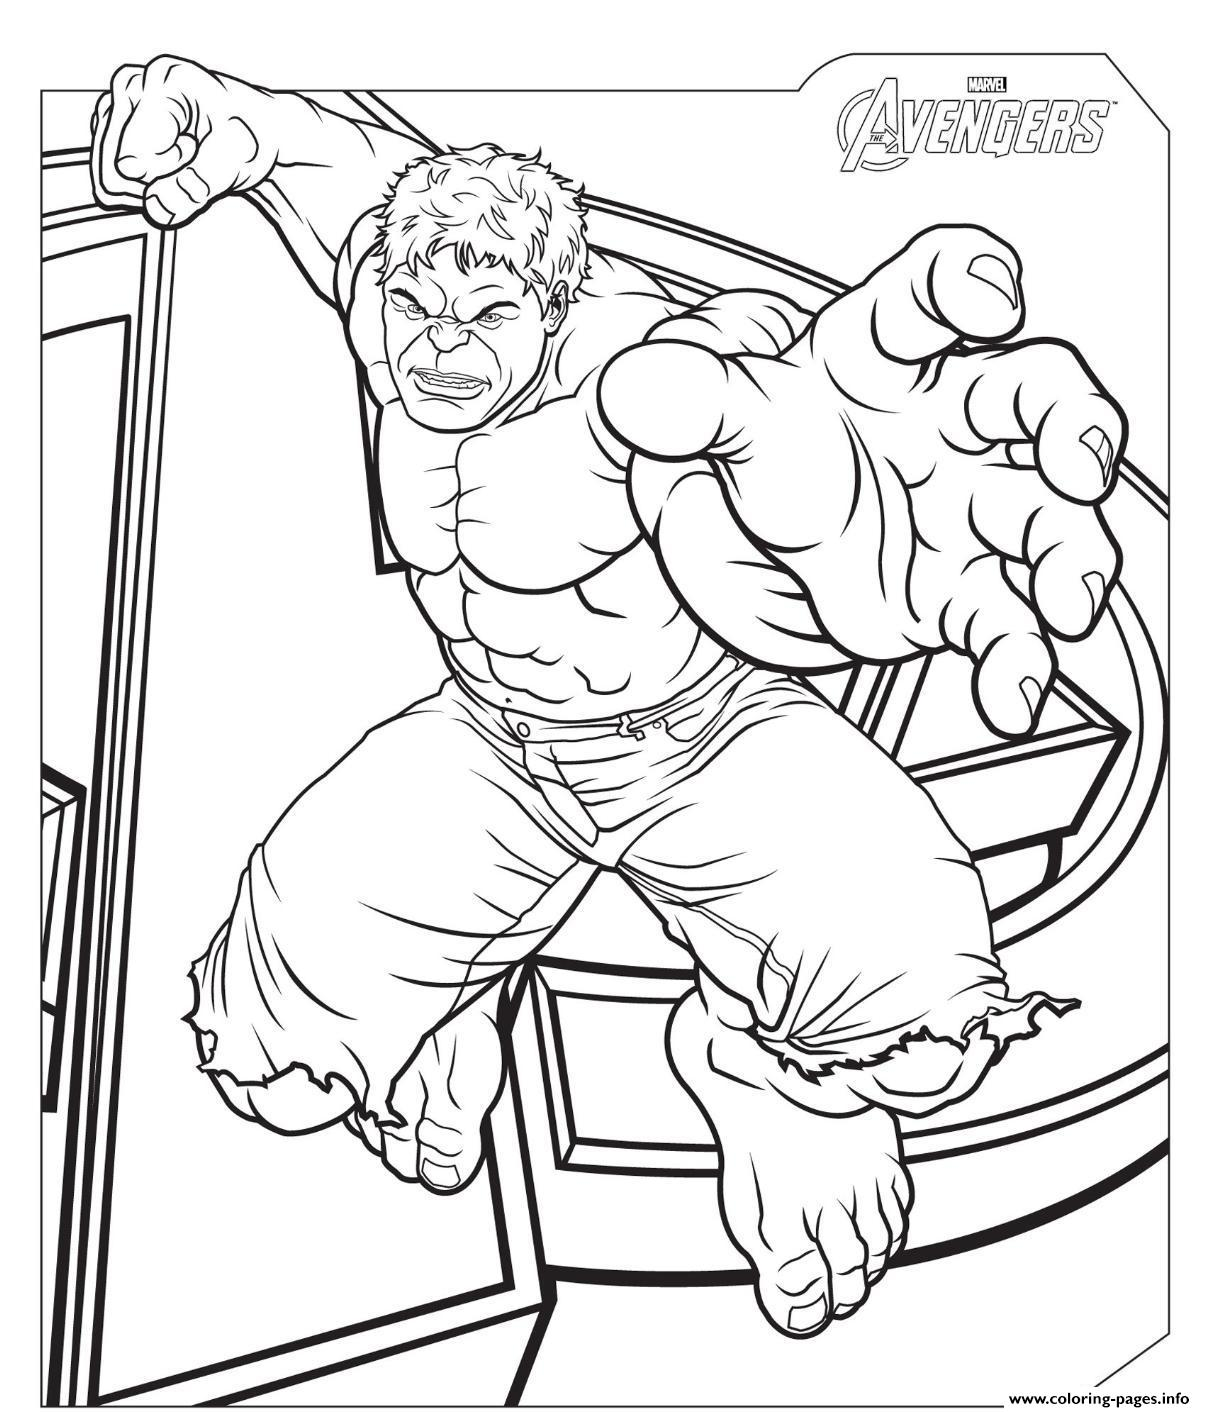 The Avengers Hulk S2f57 Coloring Pages Printable